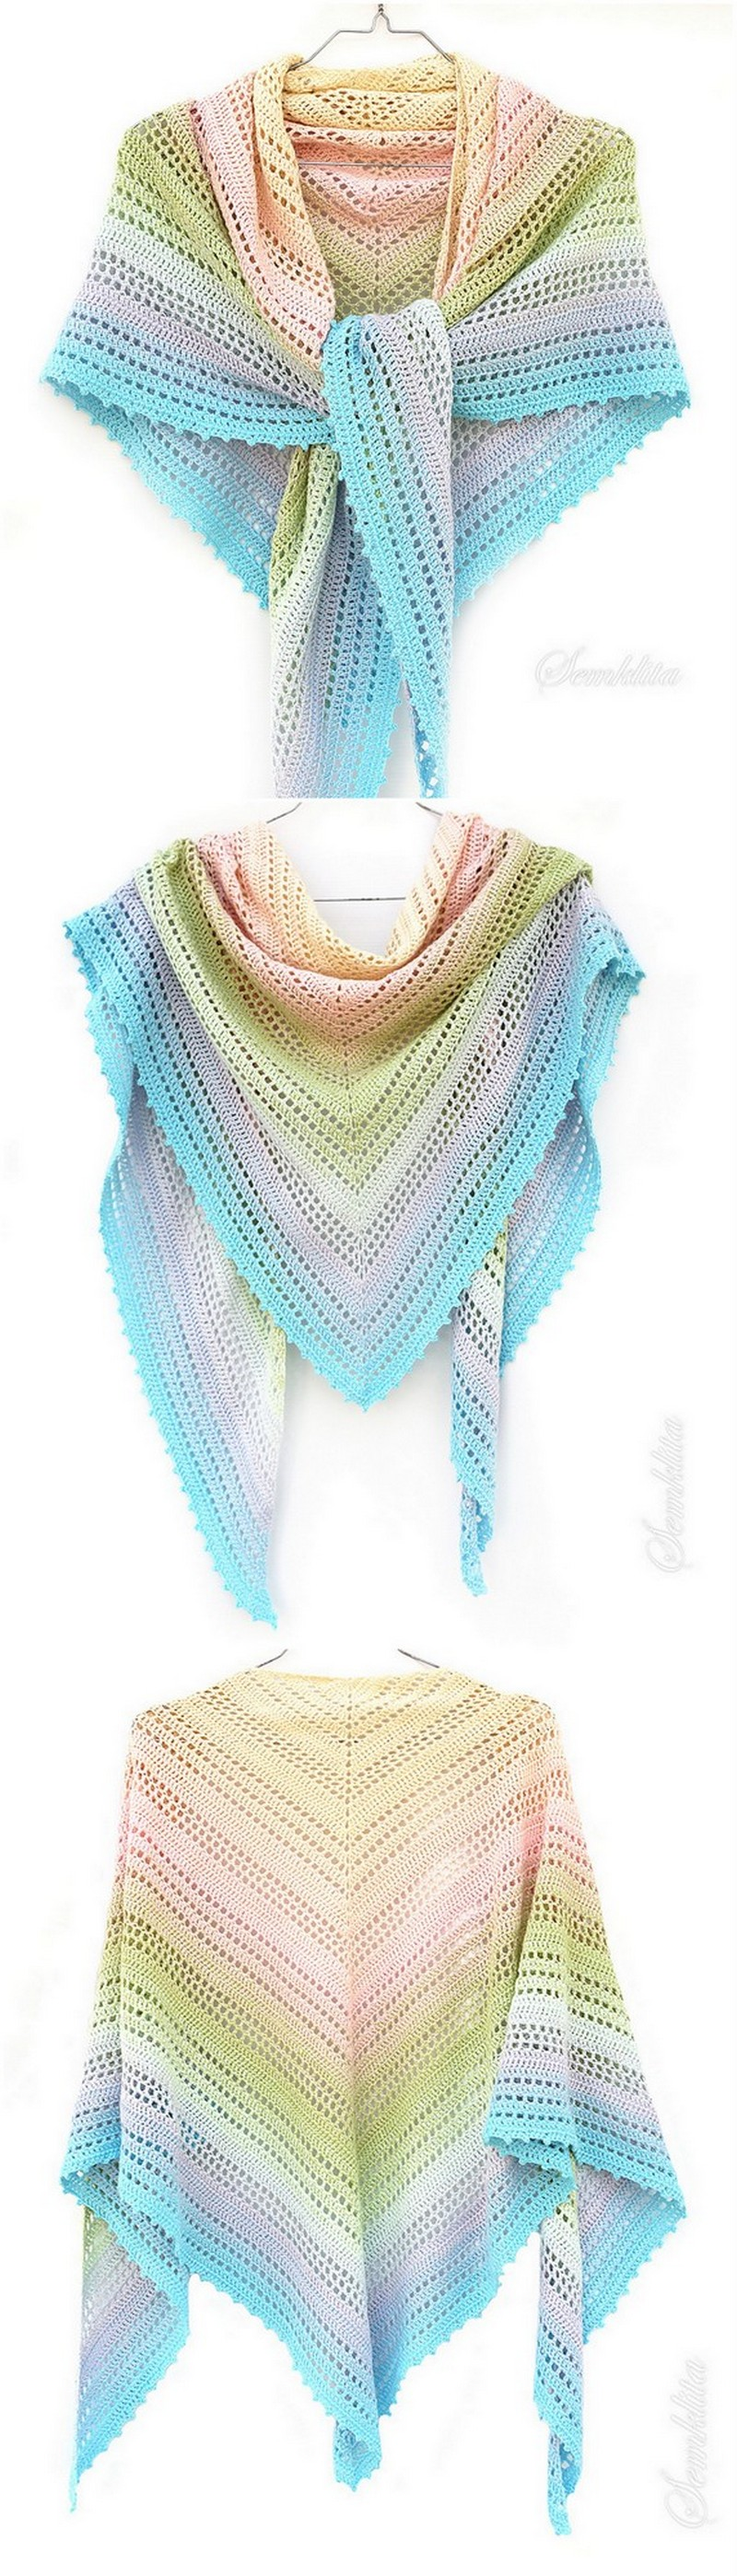 Crochet Shawl Pattern (20)